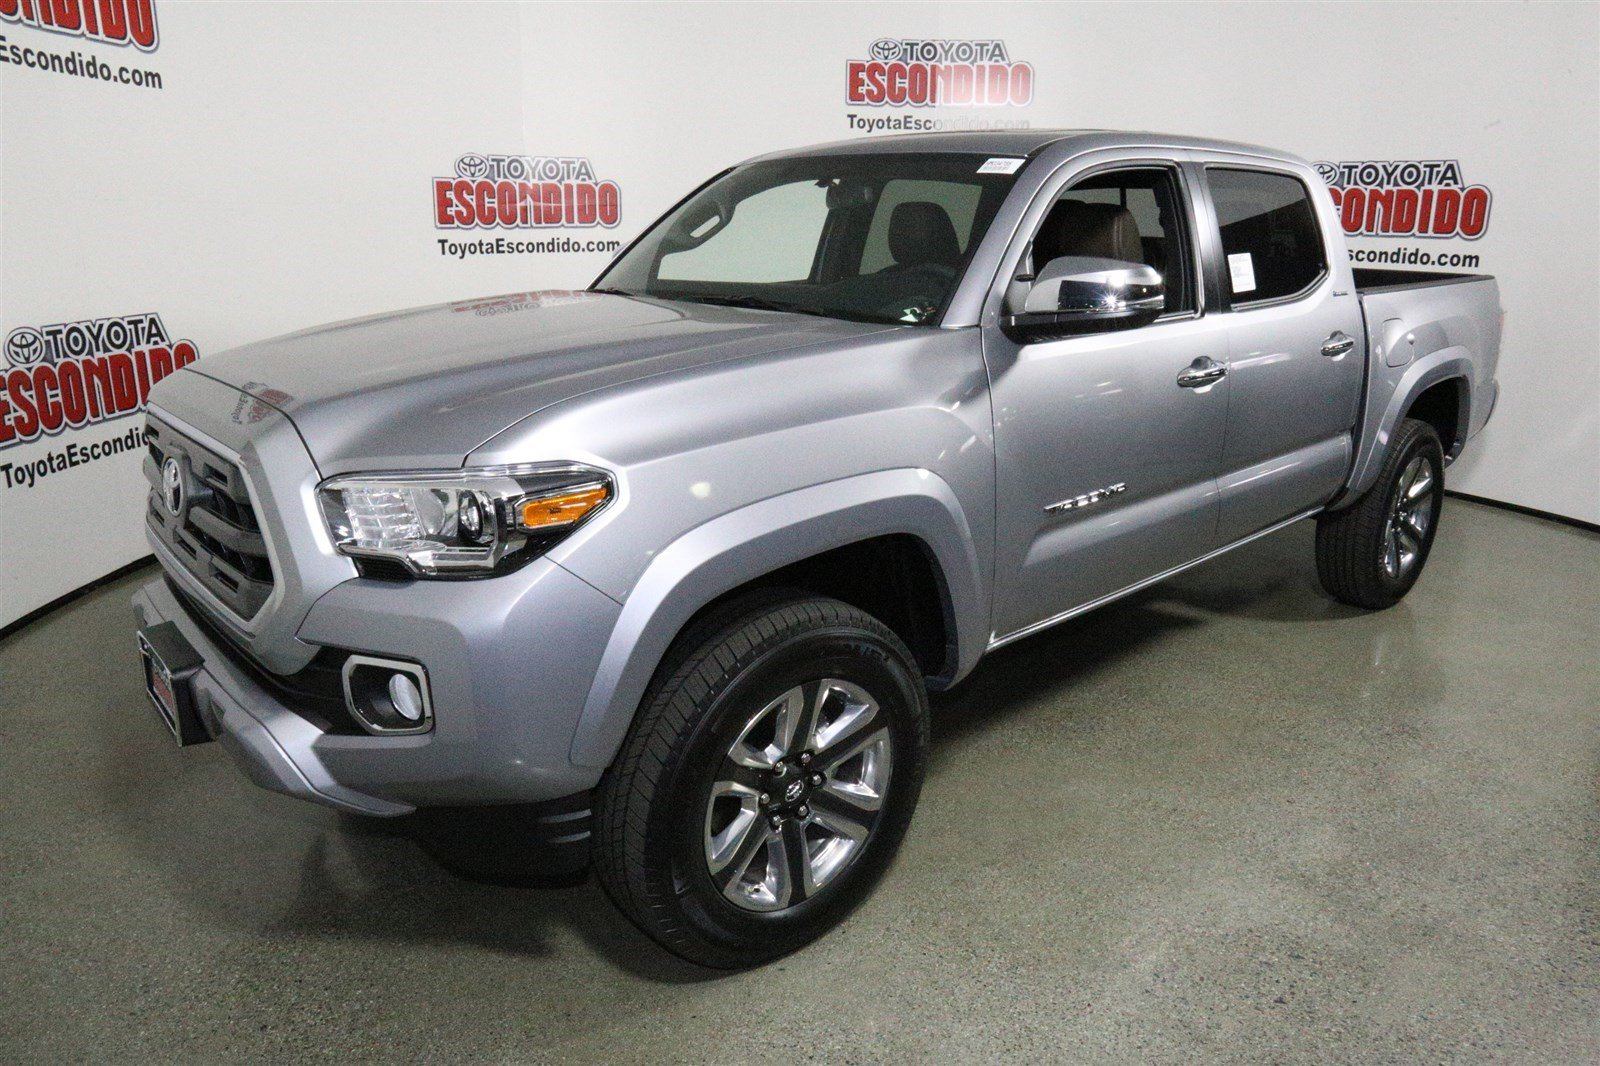 new 2017 toyota tacoma limited double cab pickup in escondido hm035474 toyota of escondido. Black Bedroom Furniture Sets. Home Design Ideas